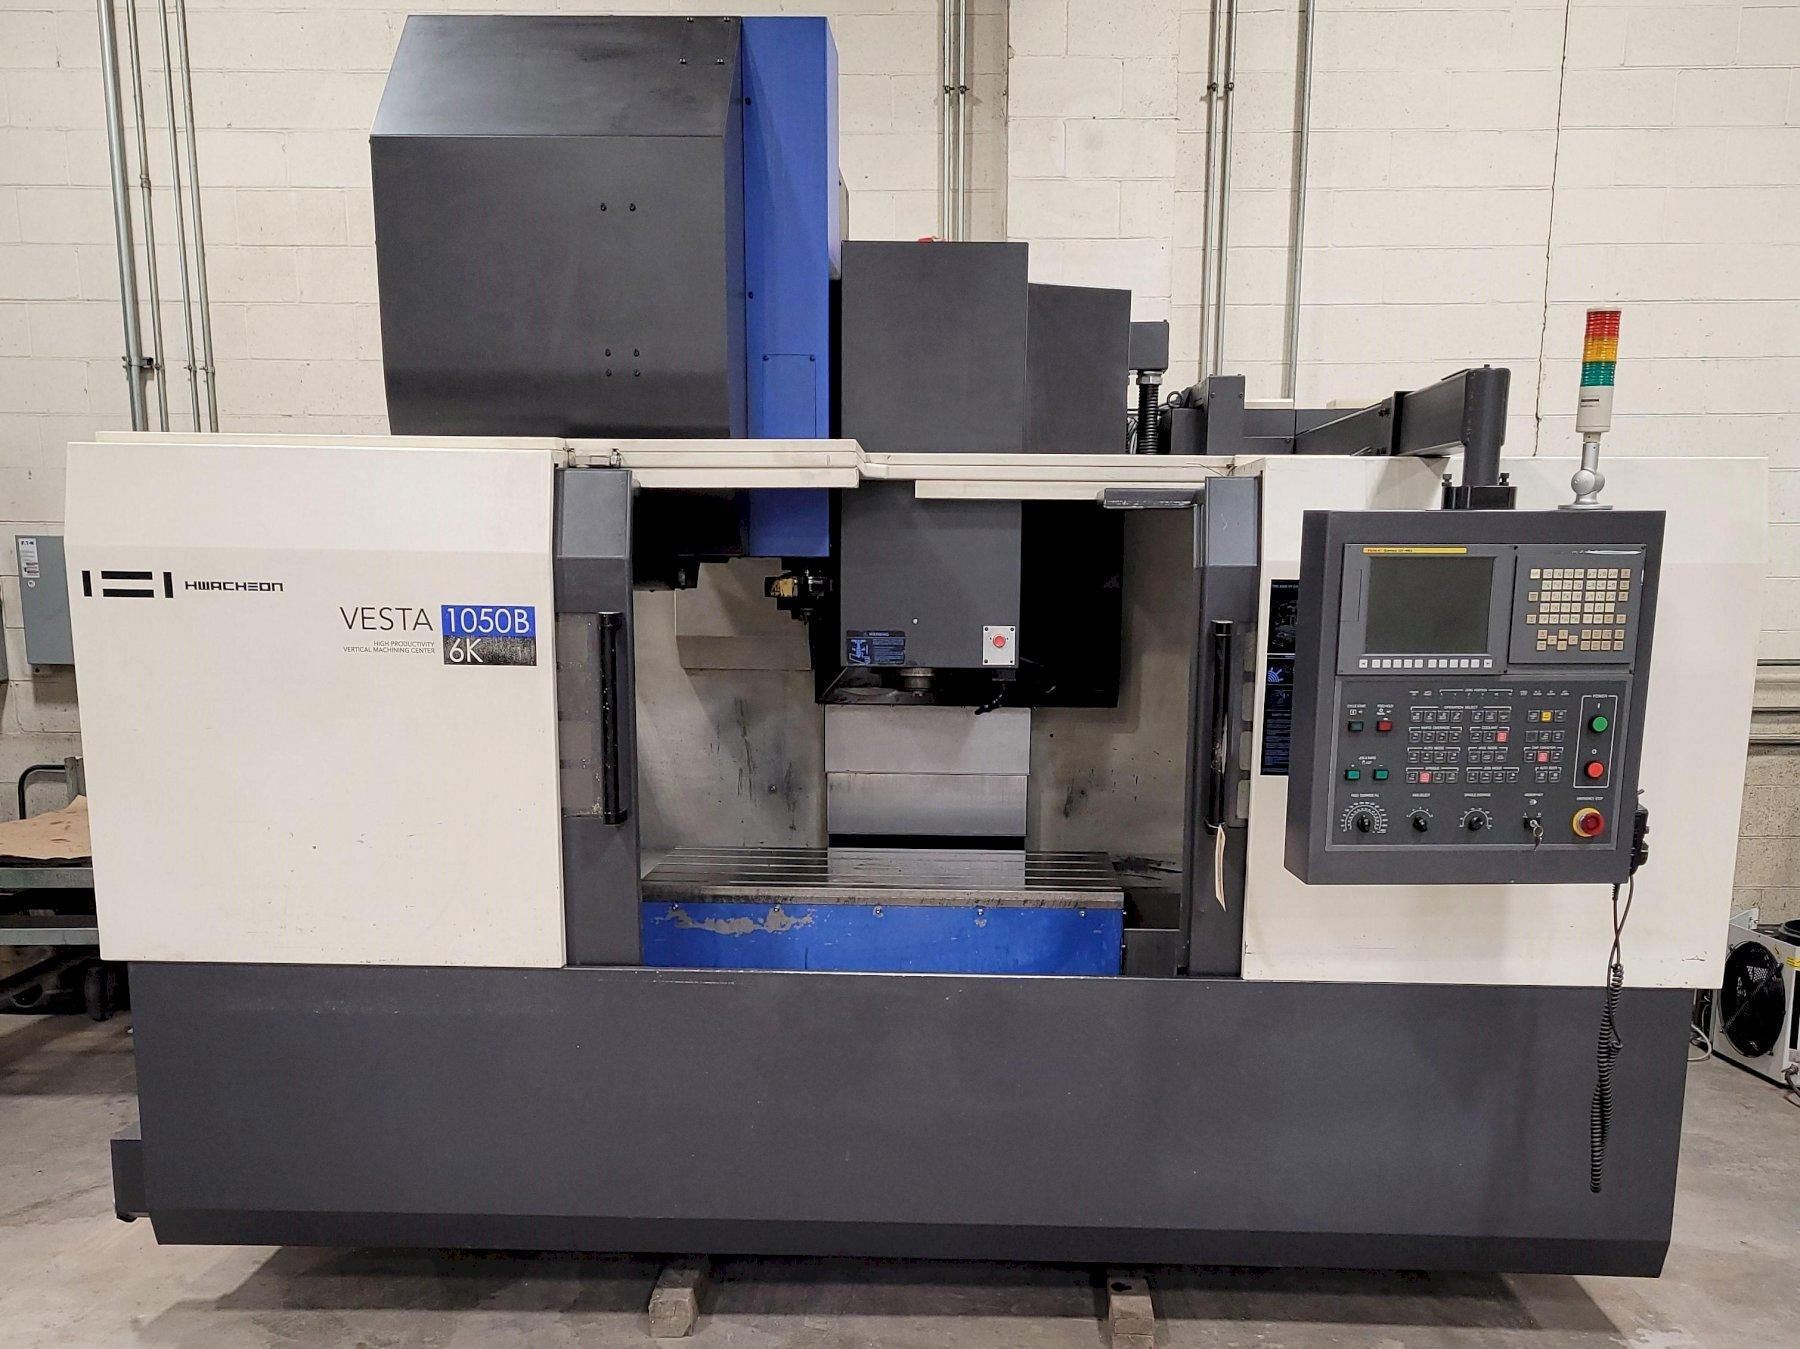 "Hwacheon Model Vesta 1050B Vertical Machining Center 25.5"" x 45"" Table. FANUC OiMD CNC 50 Taper. 24ATC. TSC. Well Equipped 2011"